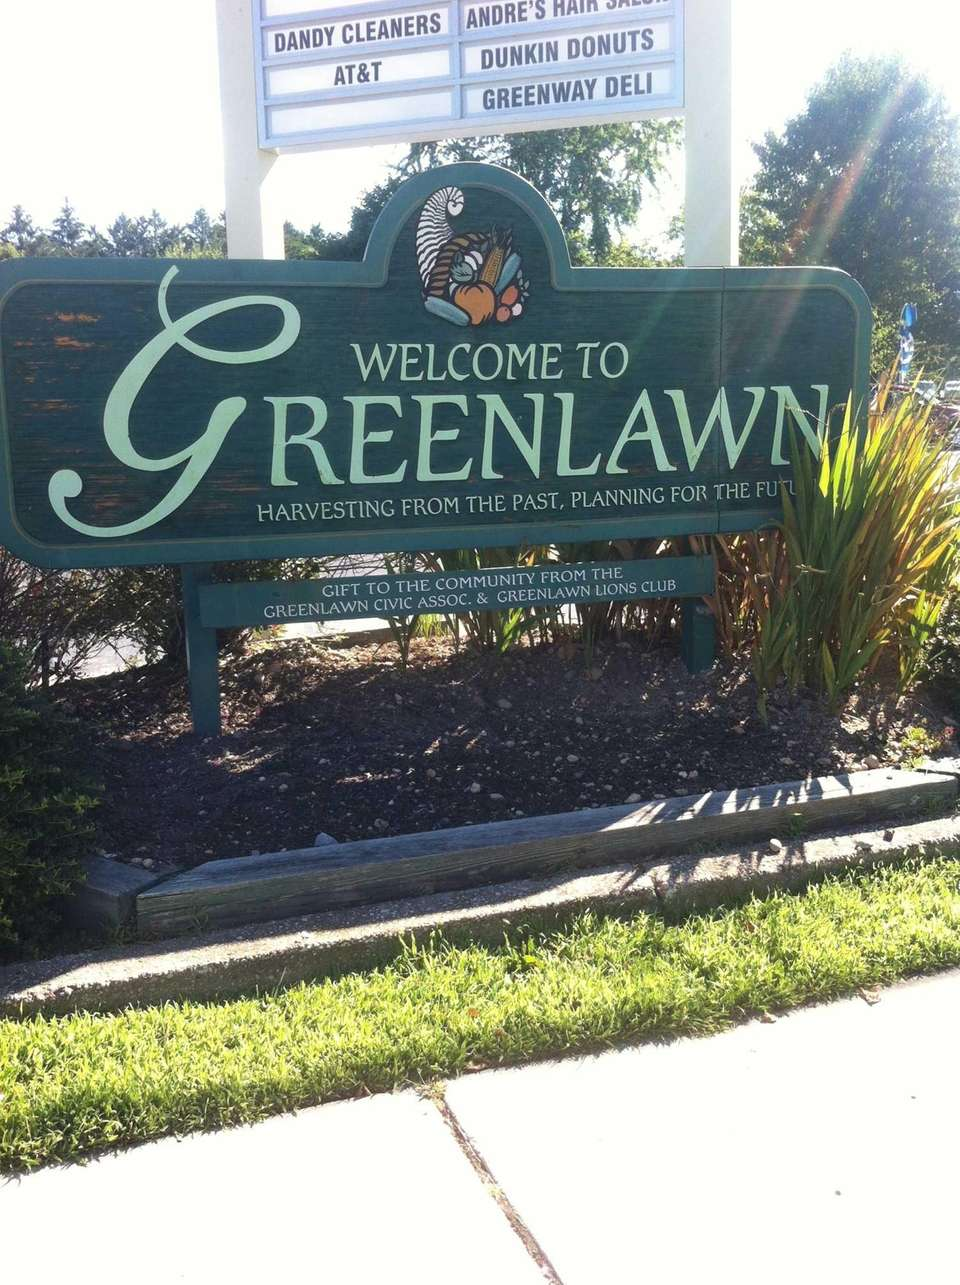 Greenlawn, originally named Old Fields, is a hamlet